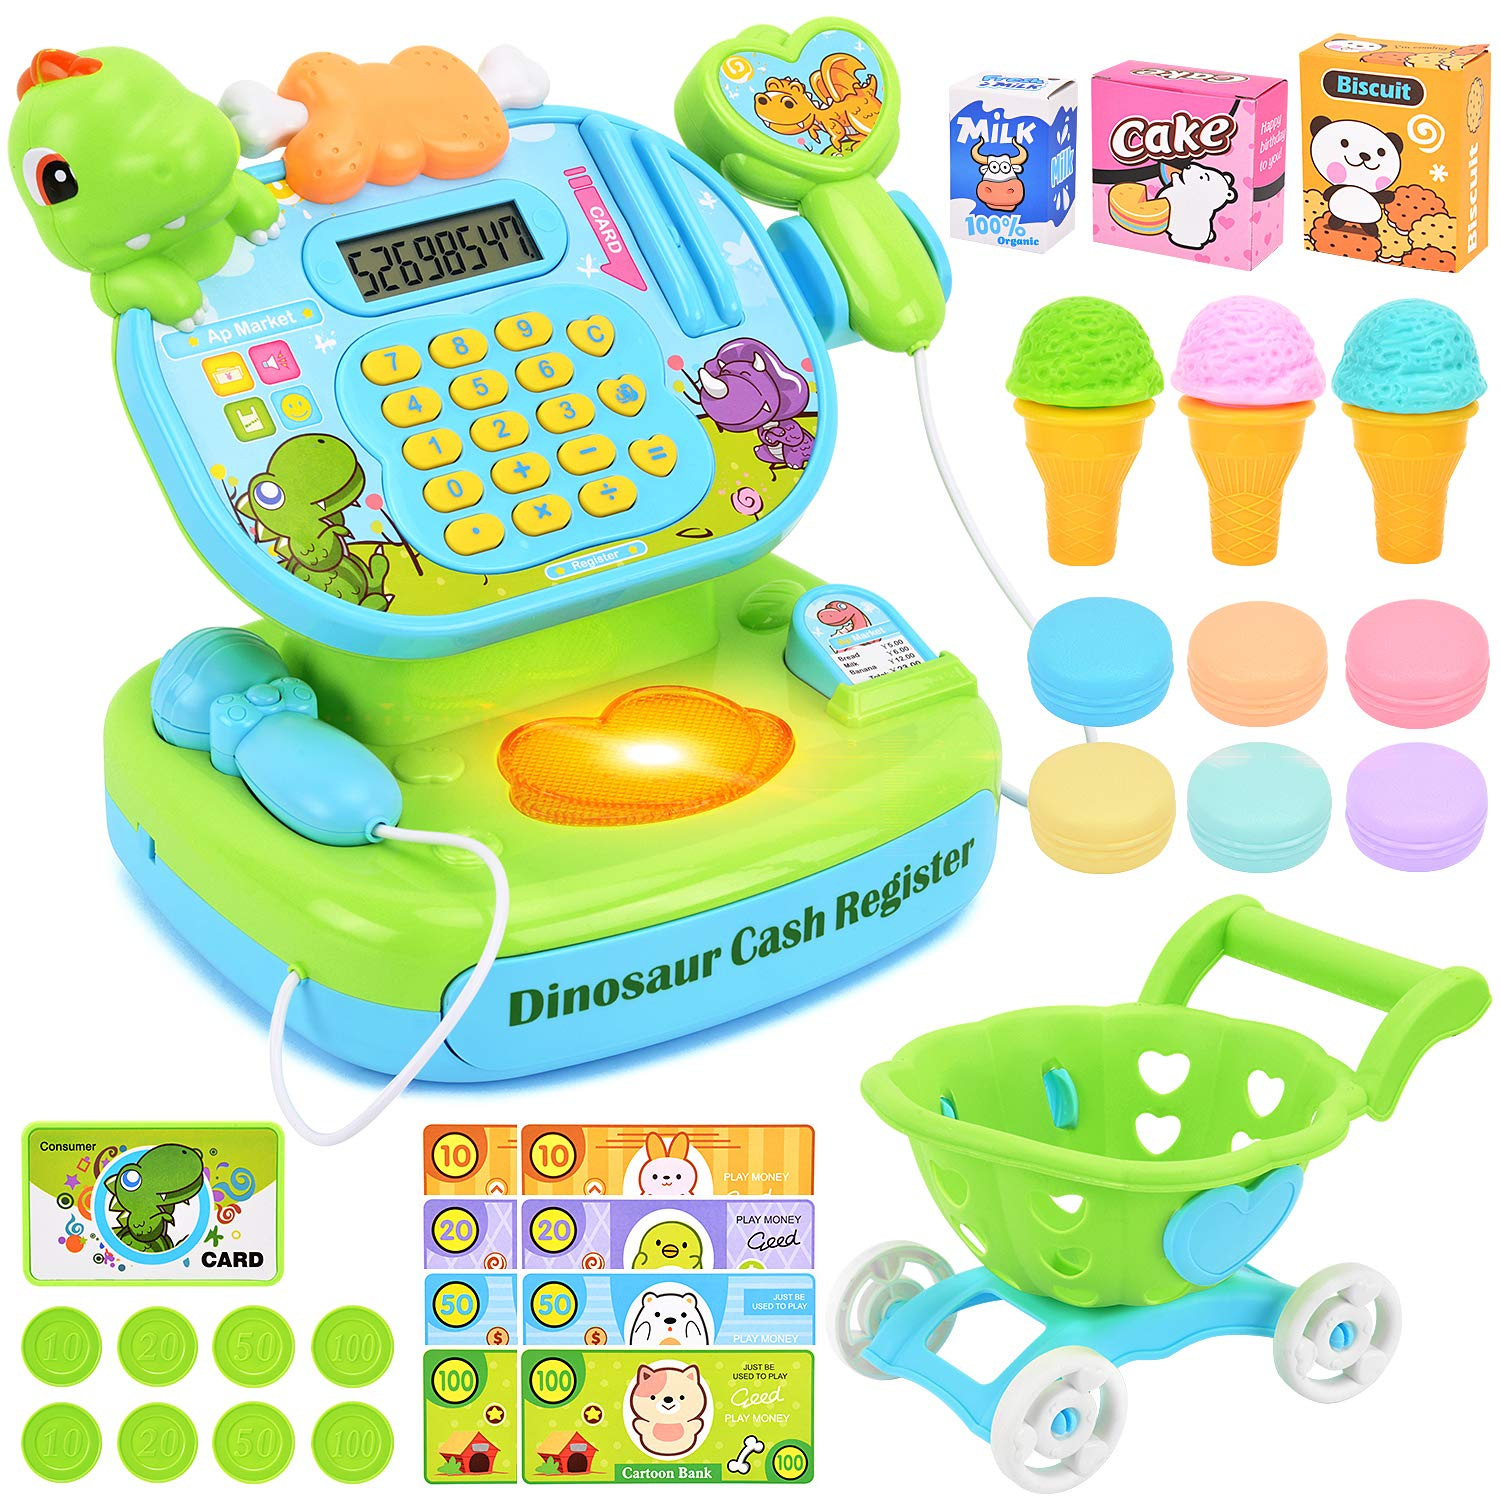 BATTOP Pretend Play Cash Register Toy with Scanner Microphone Play Money and Grocery Toy for Kids Interactive Learning Activity by BATTOP